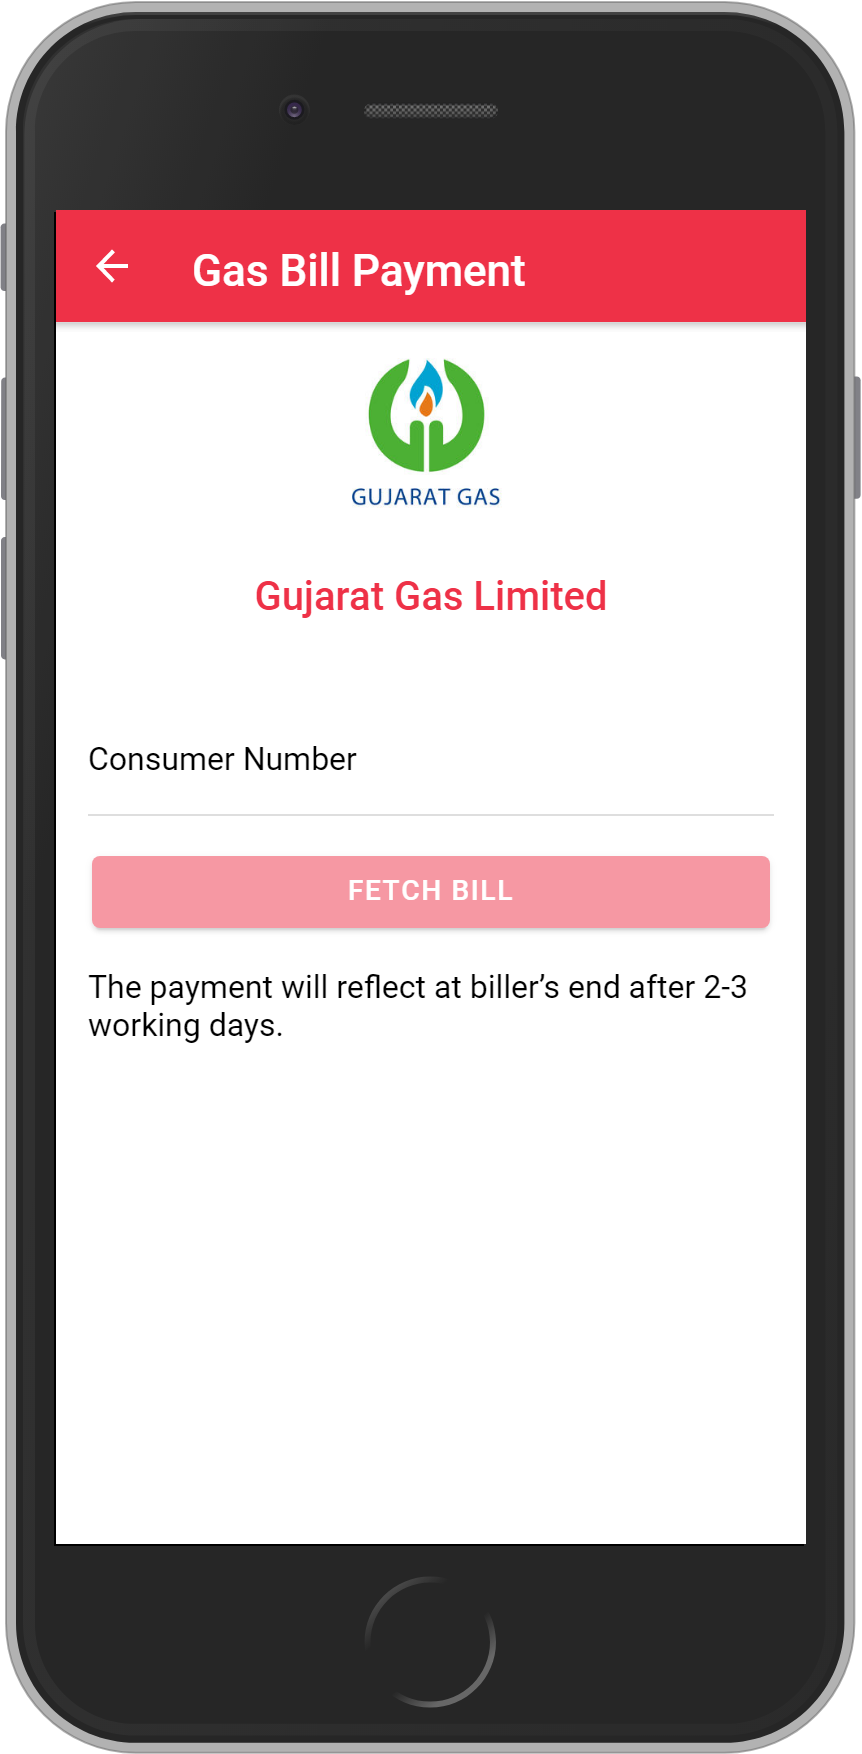 Get UNLIMITED <b>0.1%</b> CASHBACK on Gujarat Gas Limited Bill Payment.